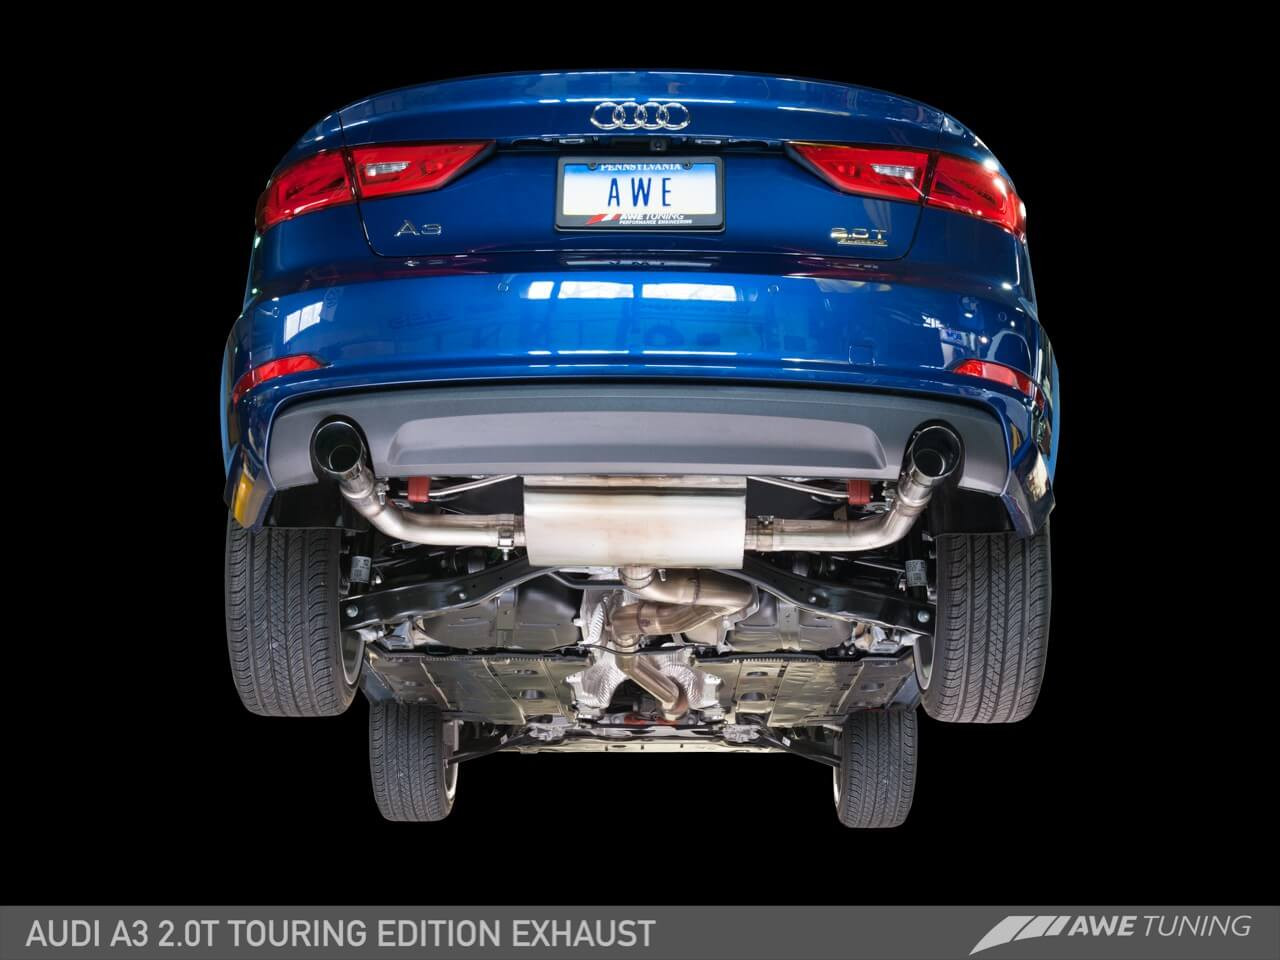 AWE Touring Catback Exhaust (Black Tips) For 15-18 Audi A3 (8V) - 3015-32058